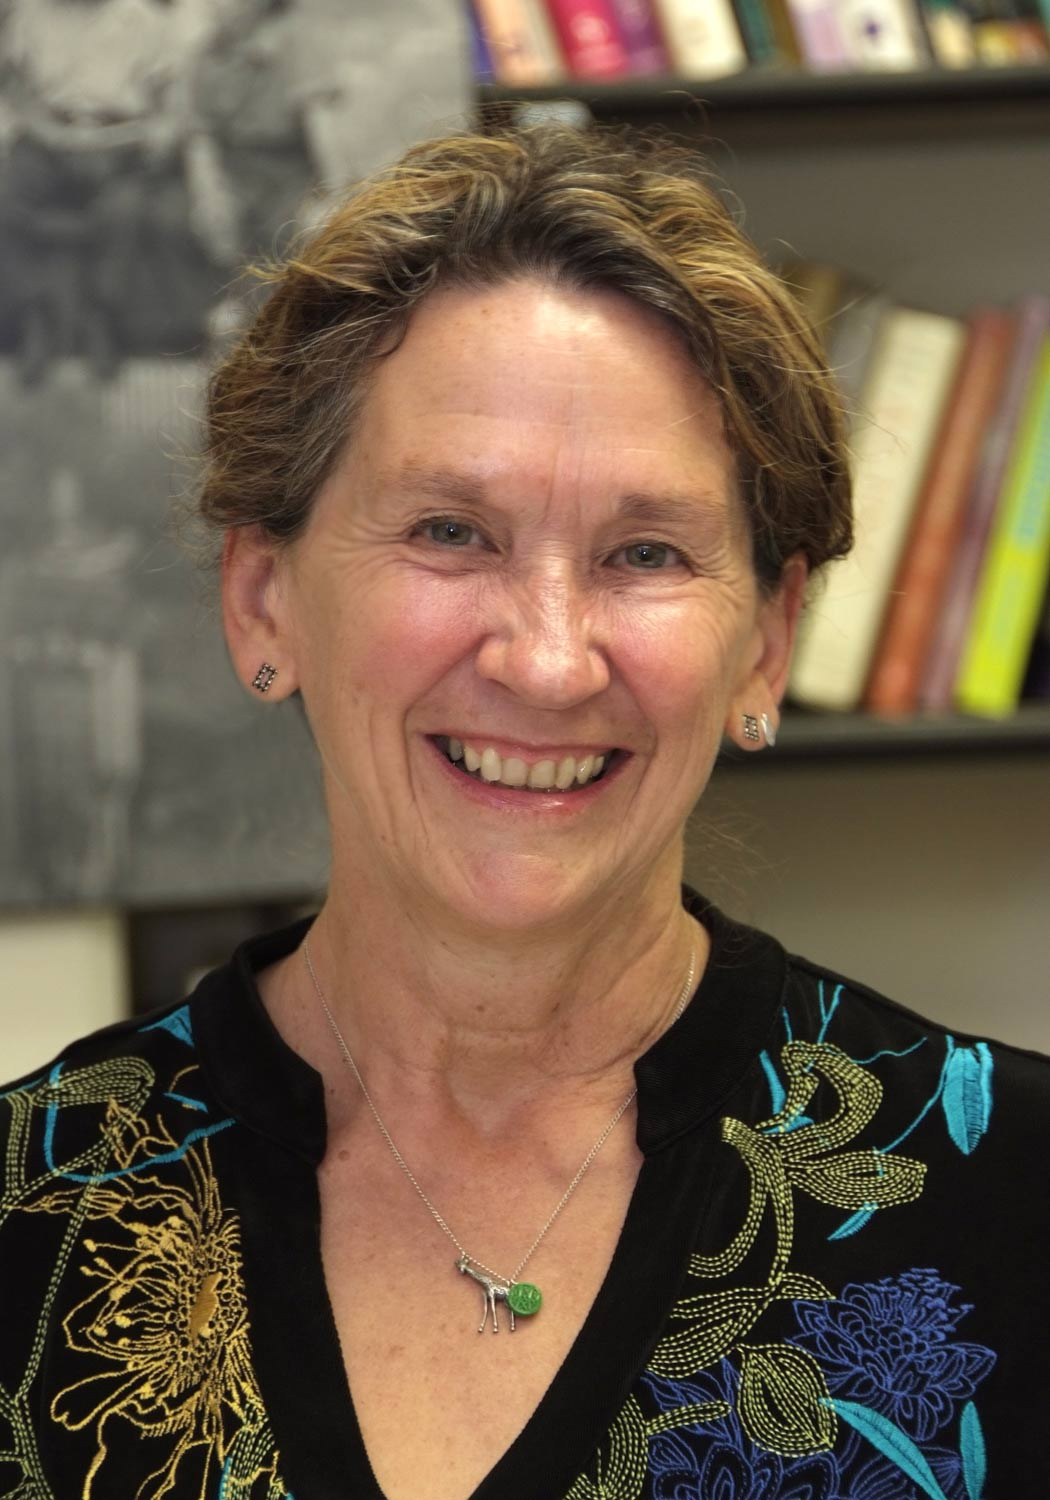 Jan Hare, professor of family studies and gerontology at the University of Wisconsin-Stout, will deliver this year?s Eric Moerer Memorial Lecture